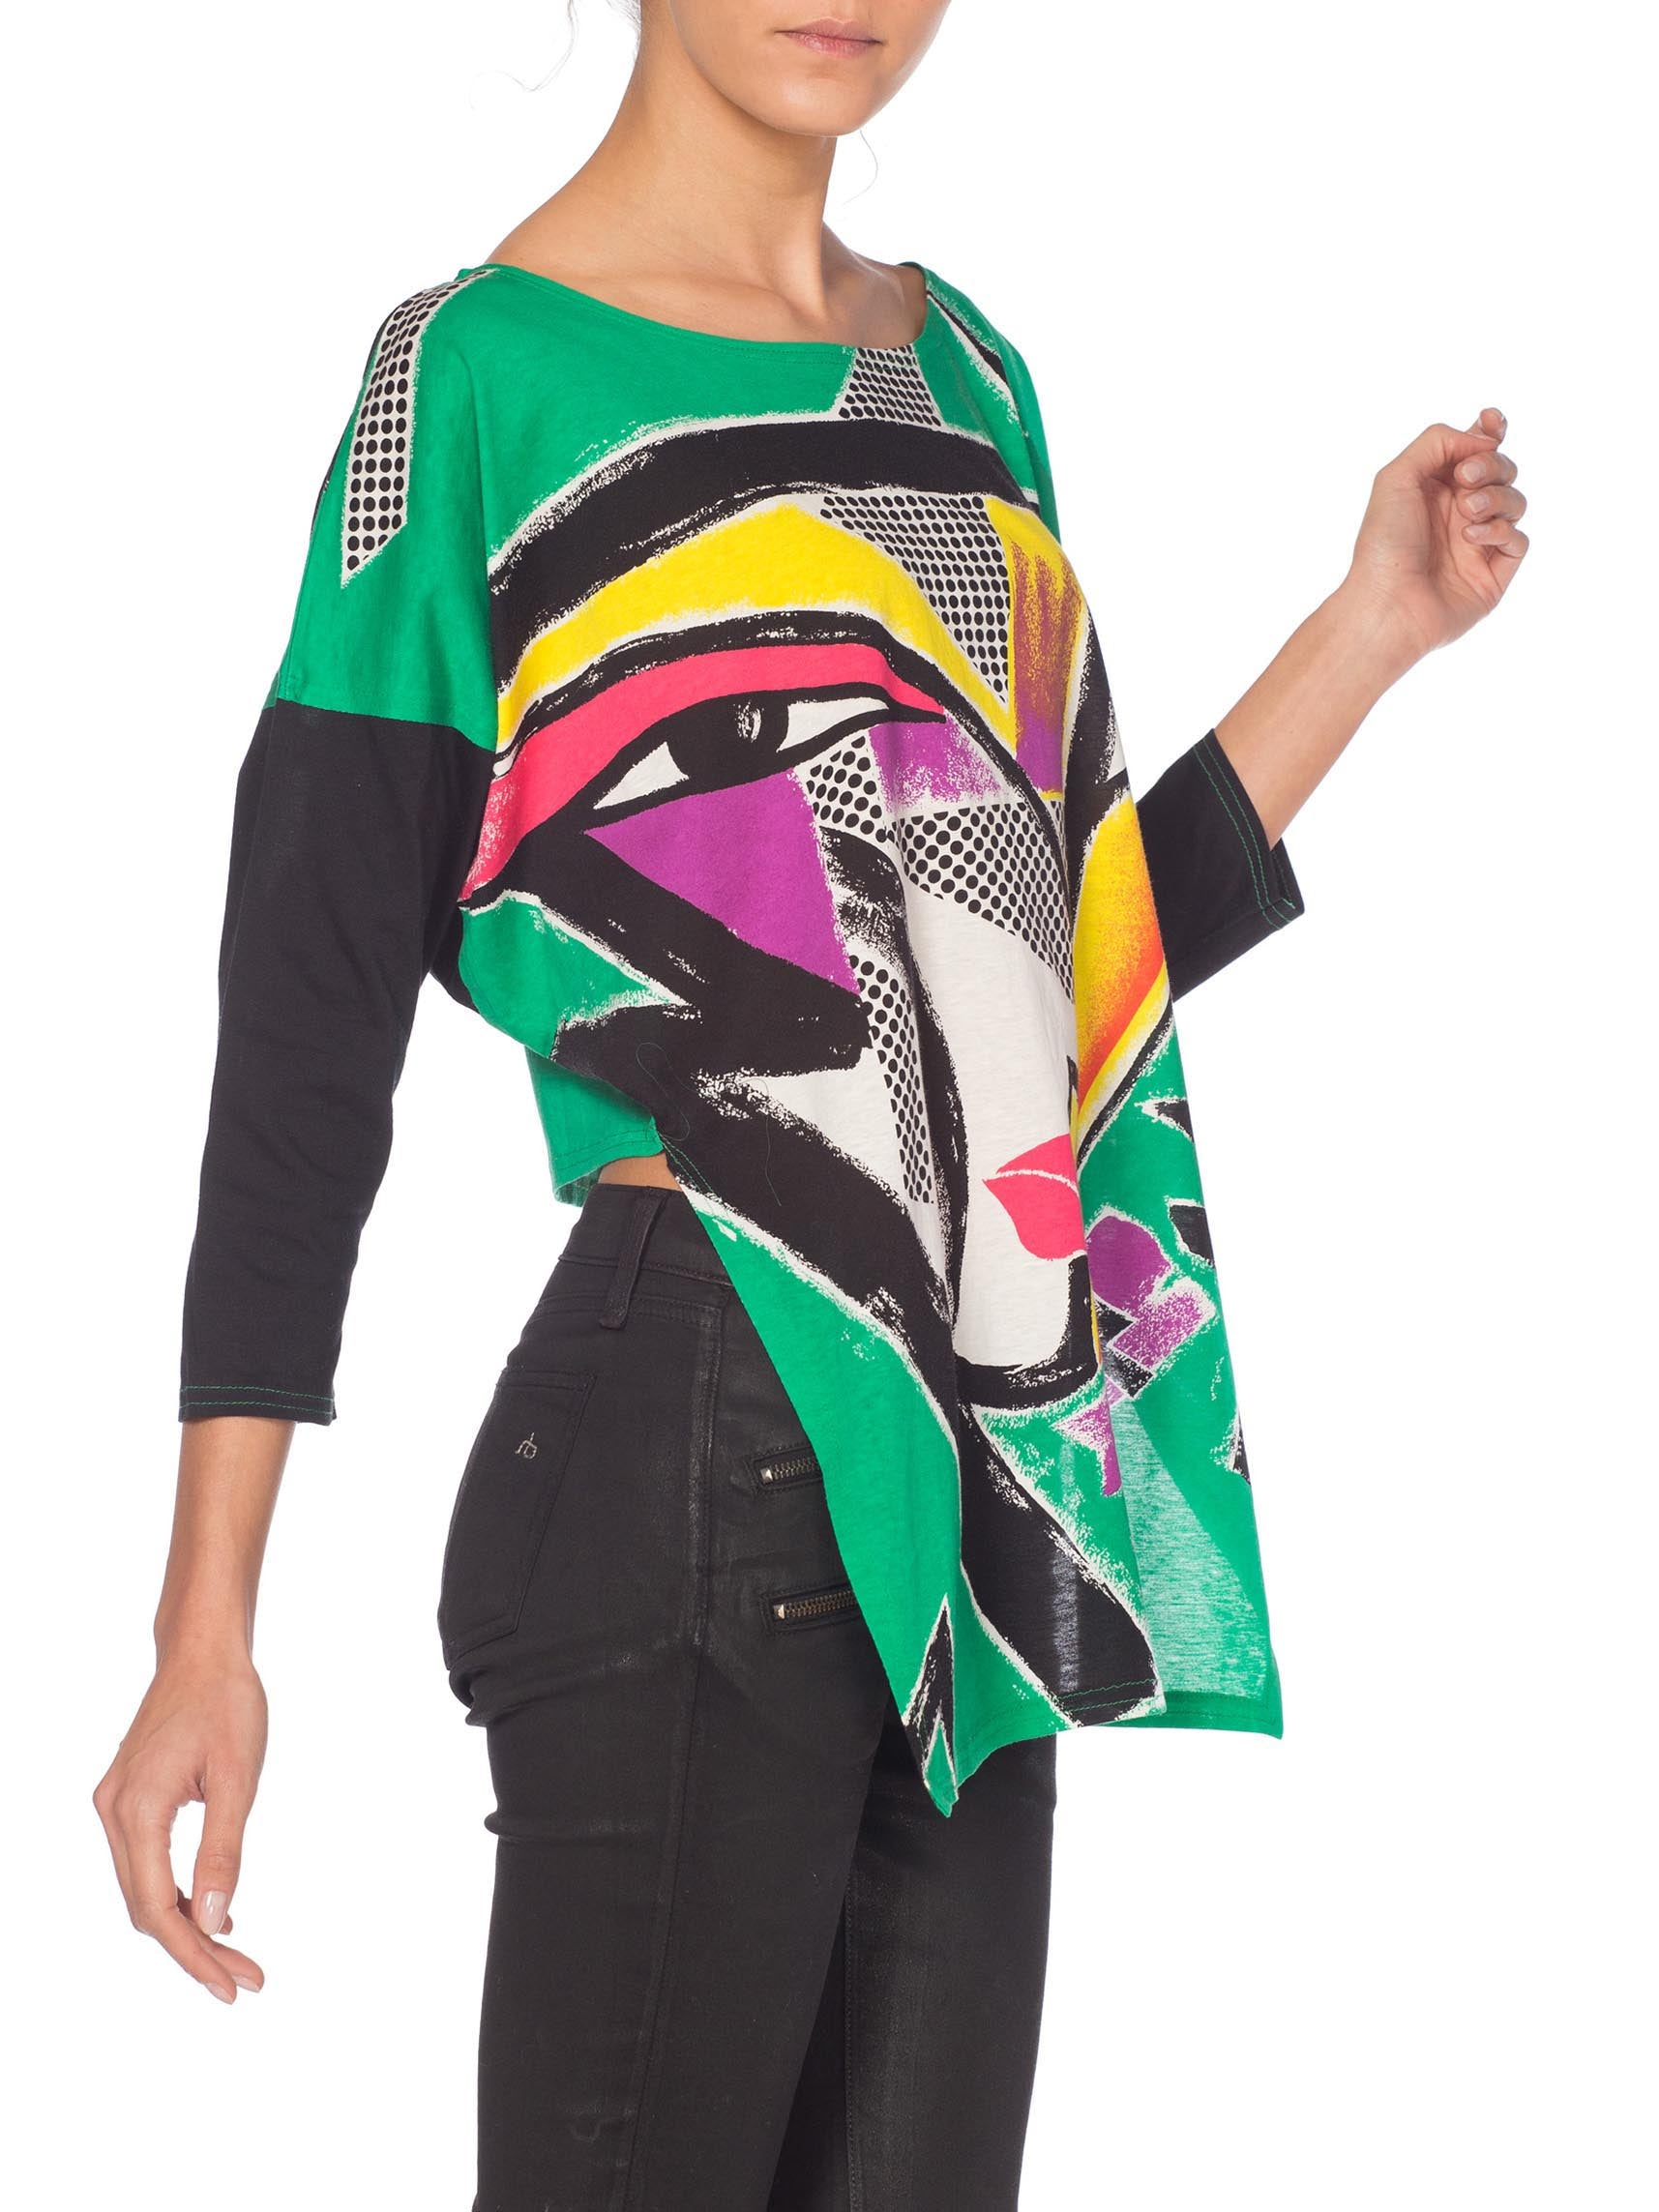 1980S KANSAI YAMAMOTO Green Asymmetrical Abstract Face Print Top With Cropped Back